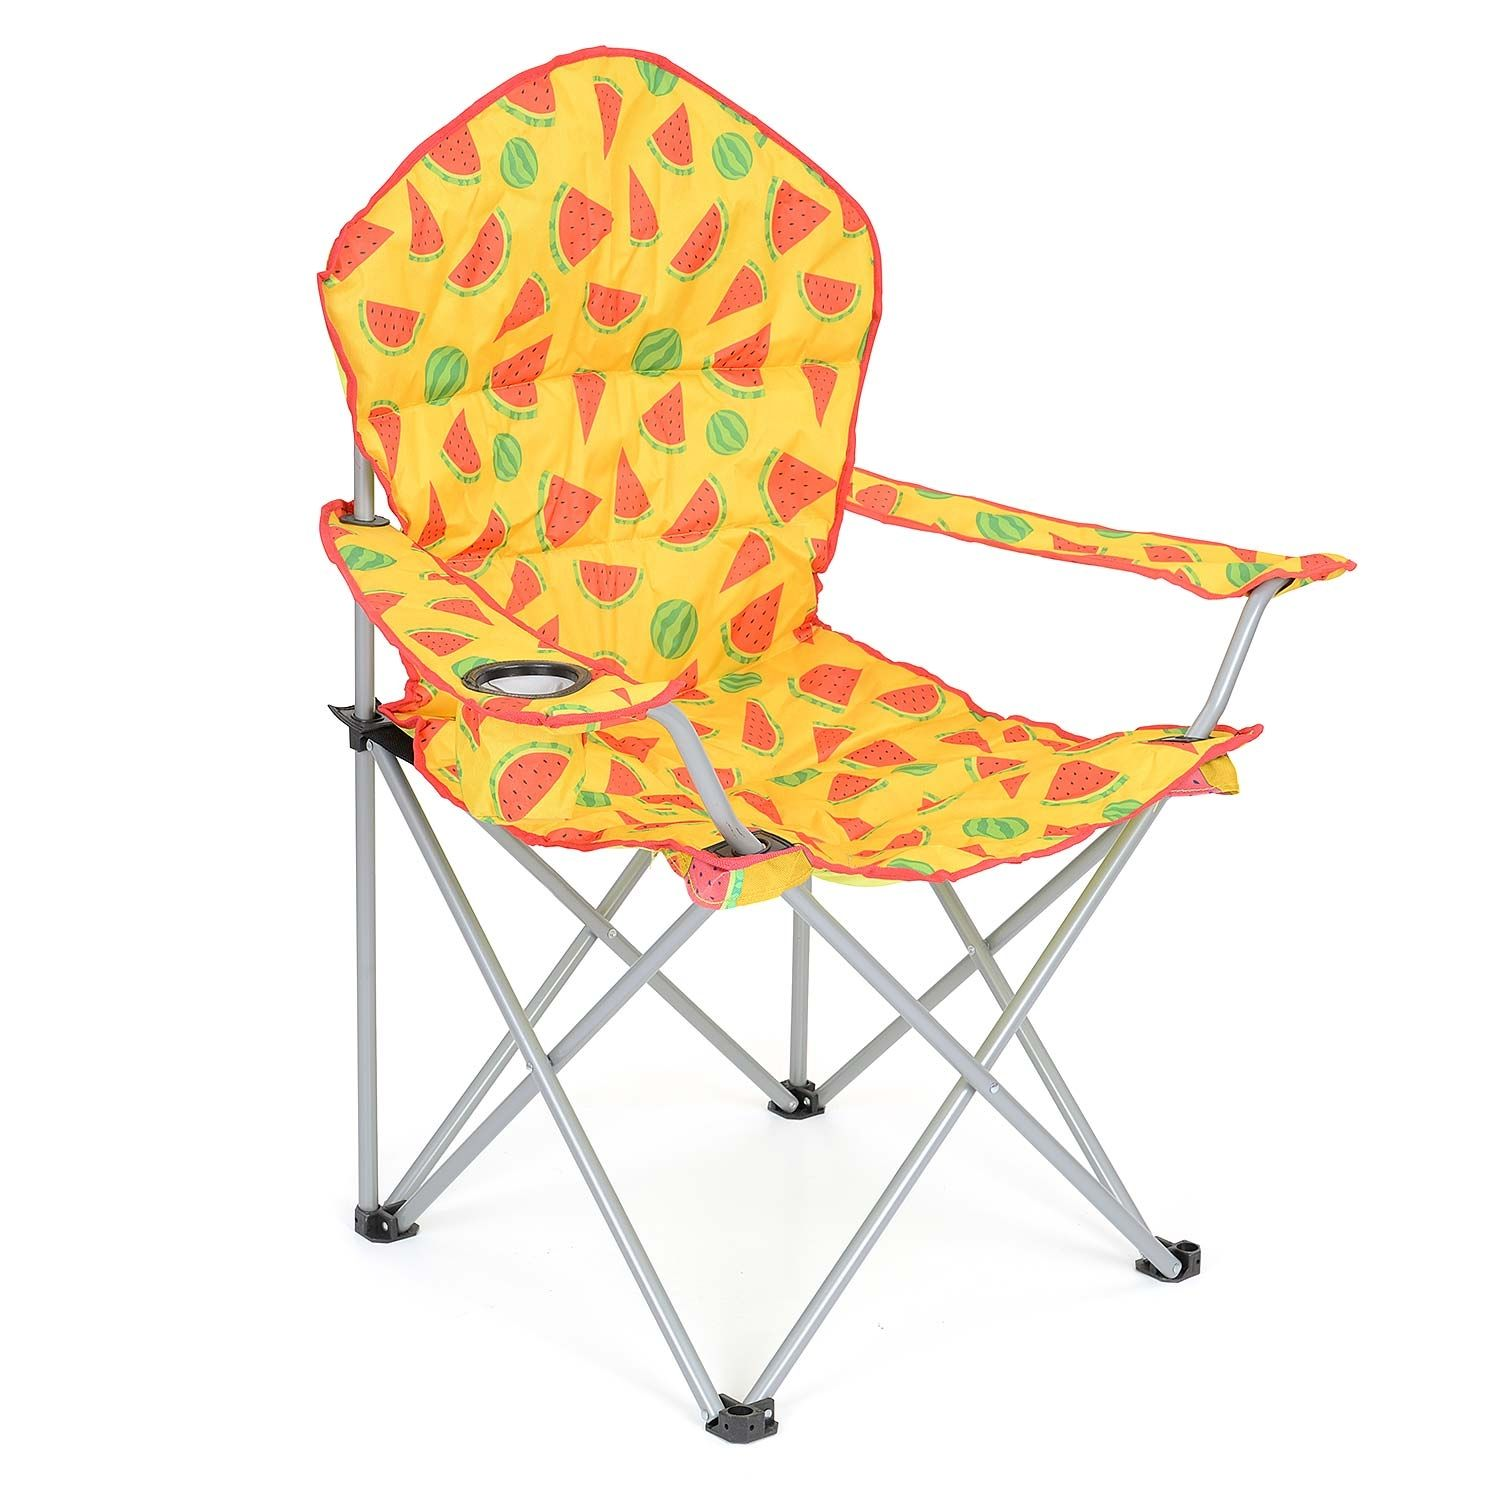 Carry Bag Polka Dot Festival Pattern High Back For Support Cup Holder Heavy Duty Frame Trail Padded Folding Camping Chair